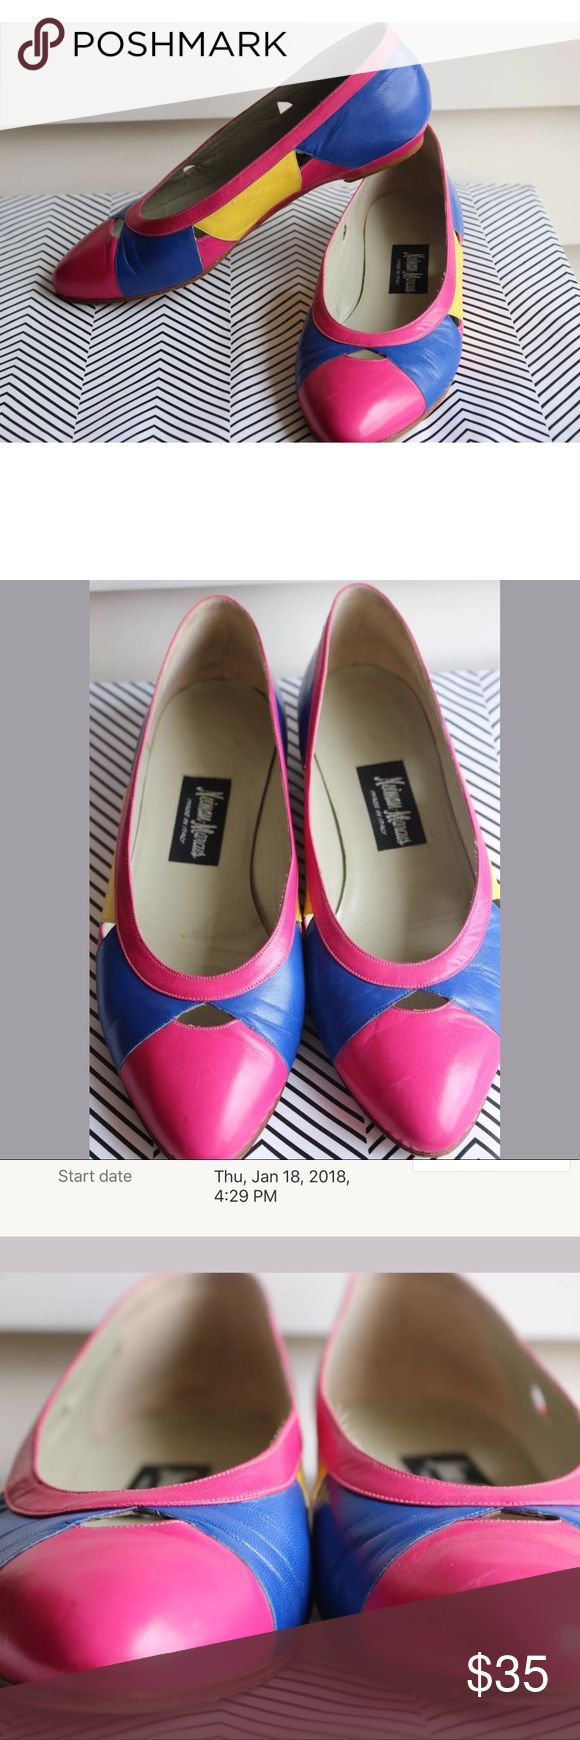 Vintage Neiman Marcus Flats 7.5 Very good condition Neiman Marcus Shoes Flats & Loafers